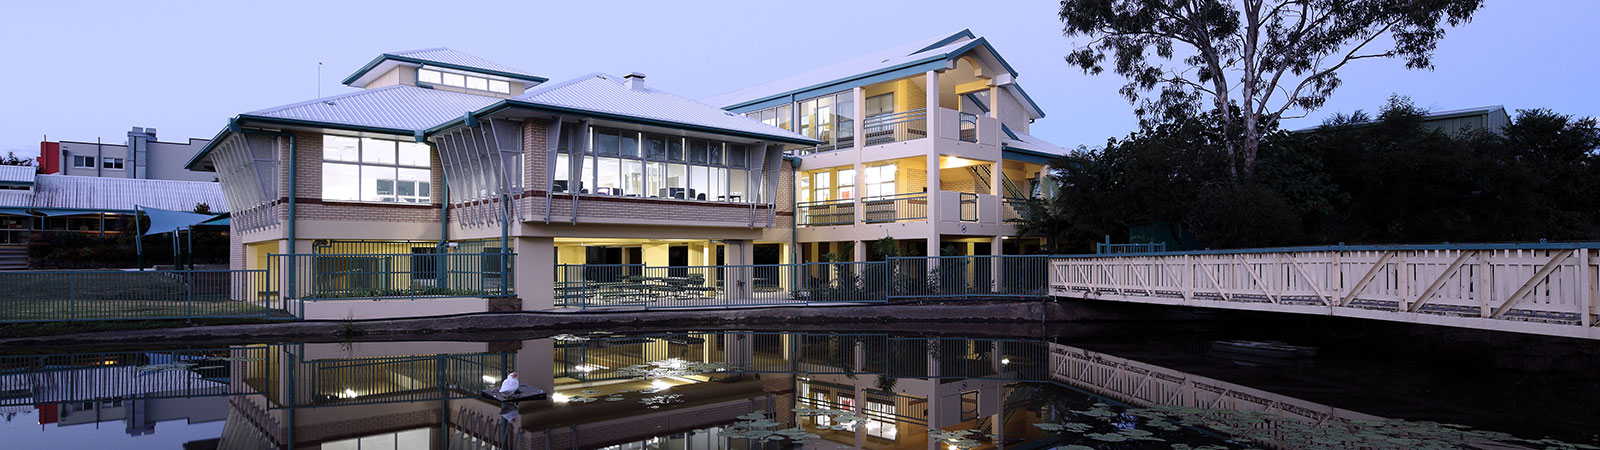 Reedy Creek Campus Open Day